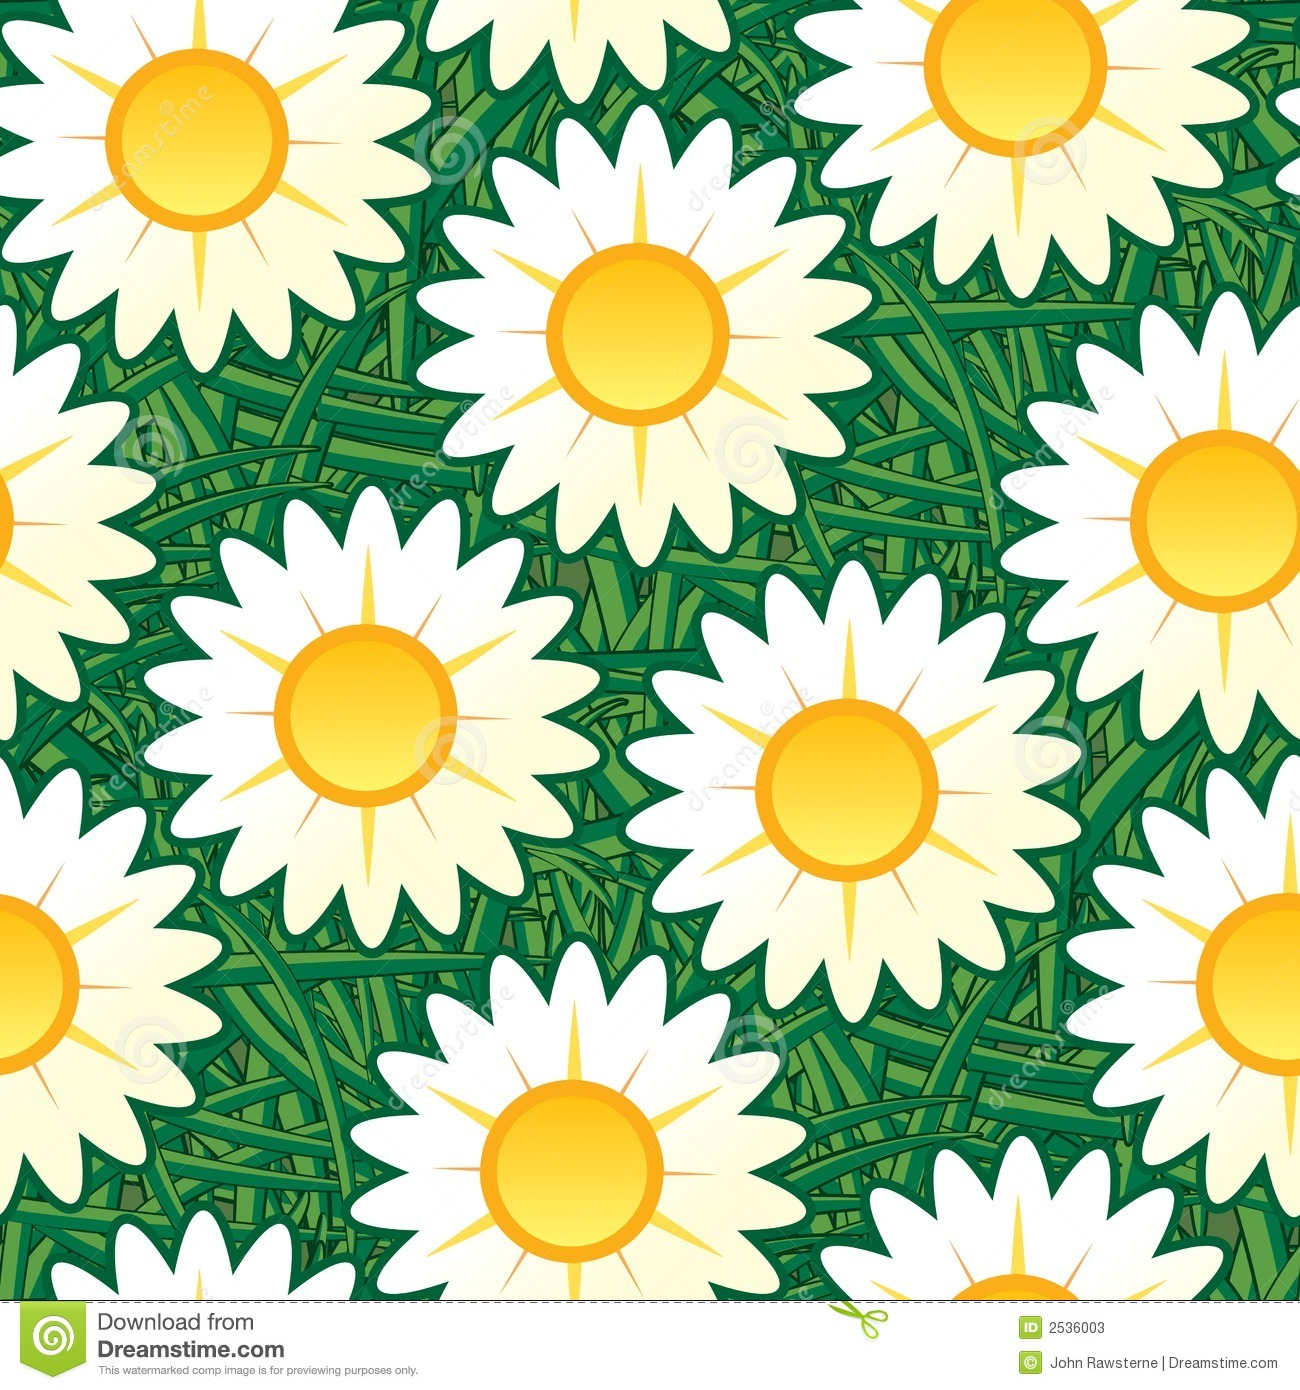 Daisy pattern wallpaper - photo#13